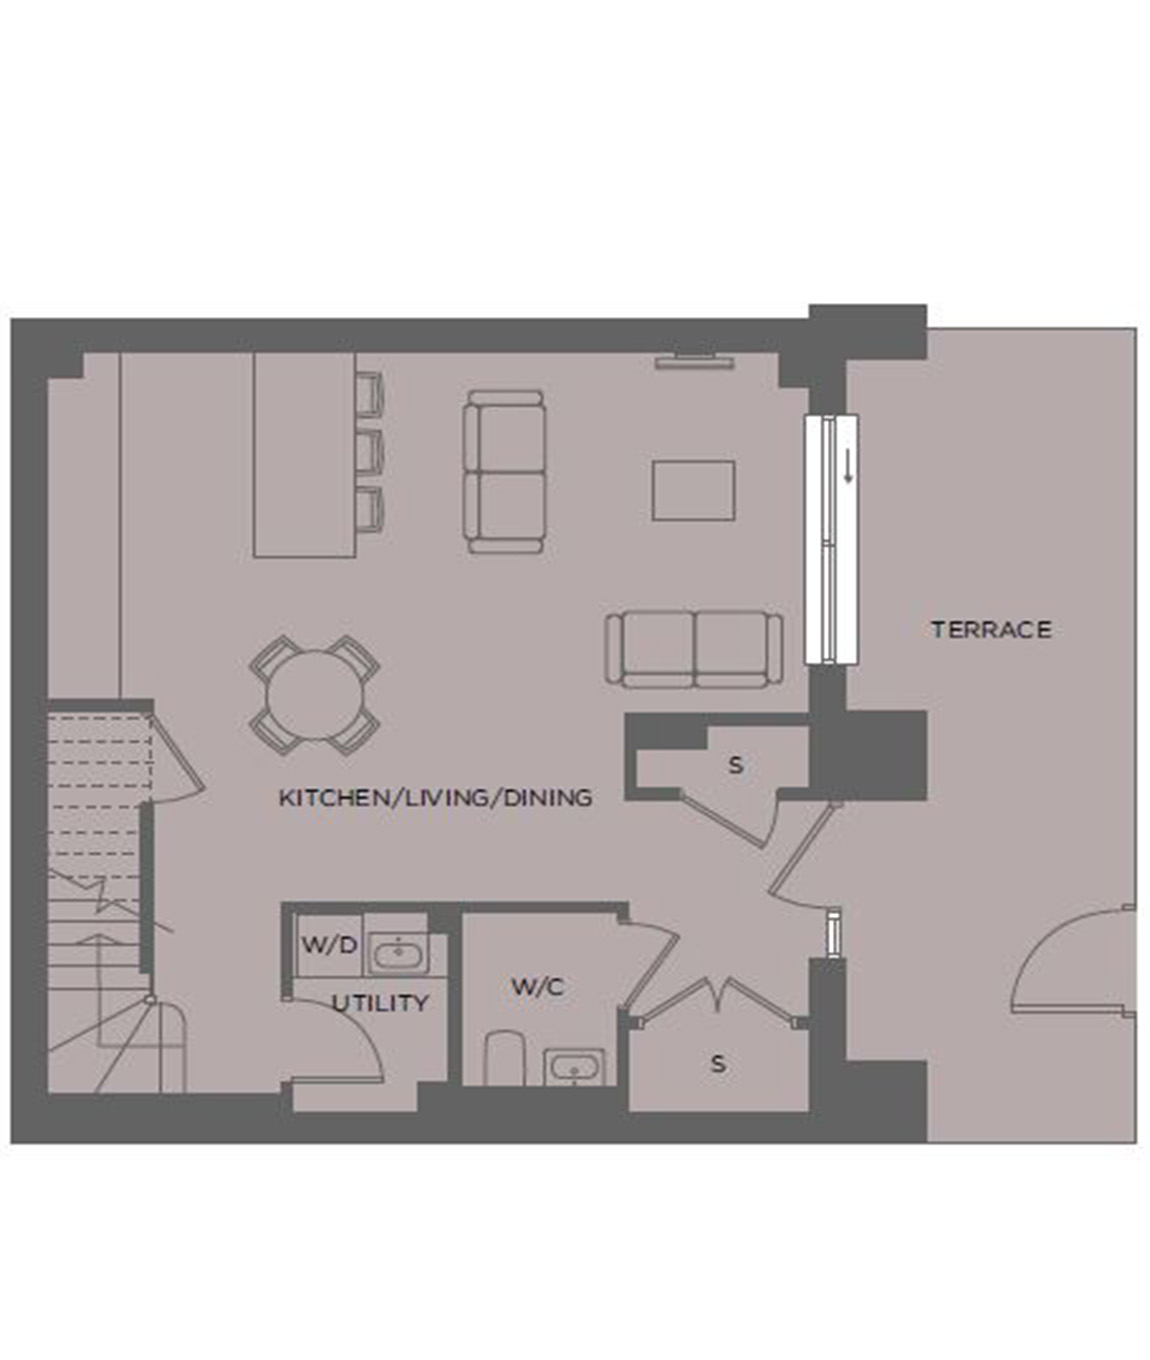 colindale gardens colindale  london  nw9 5hu  redrow